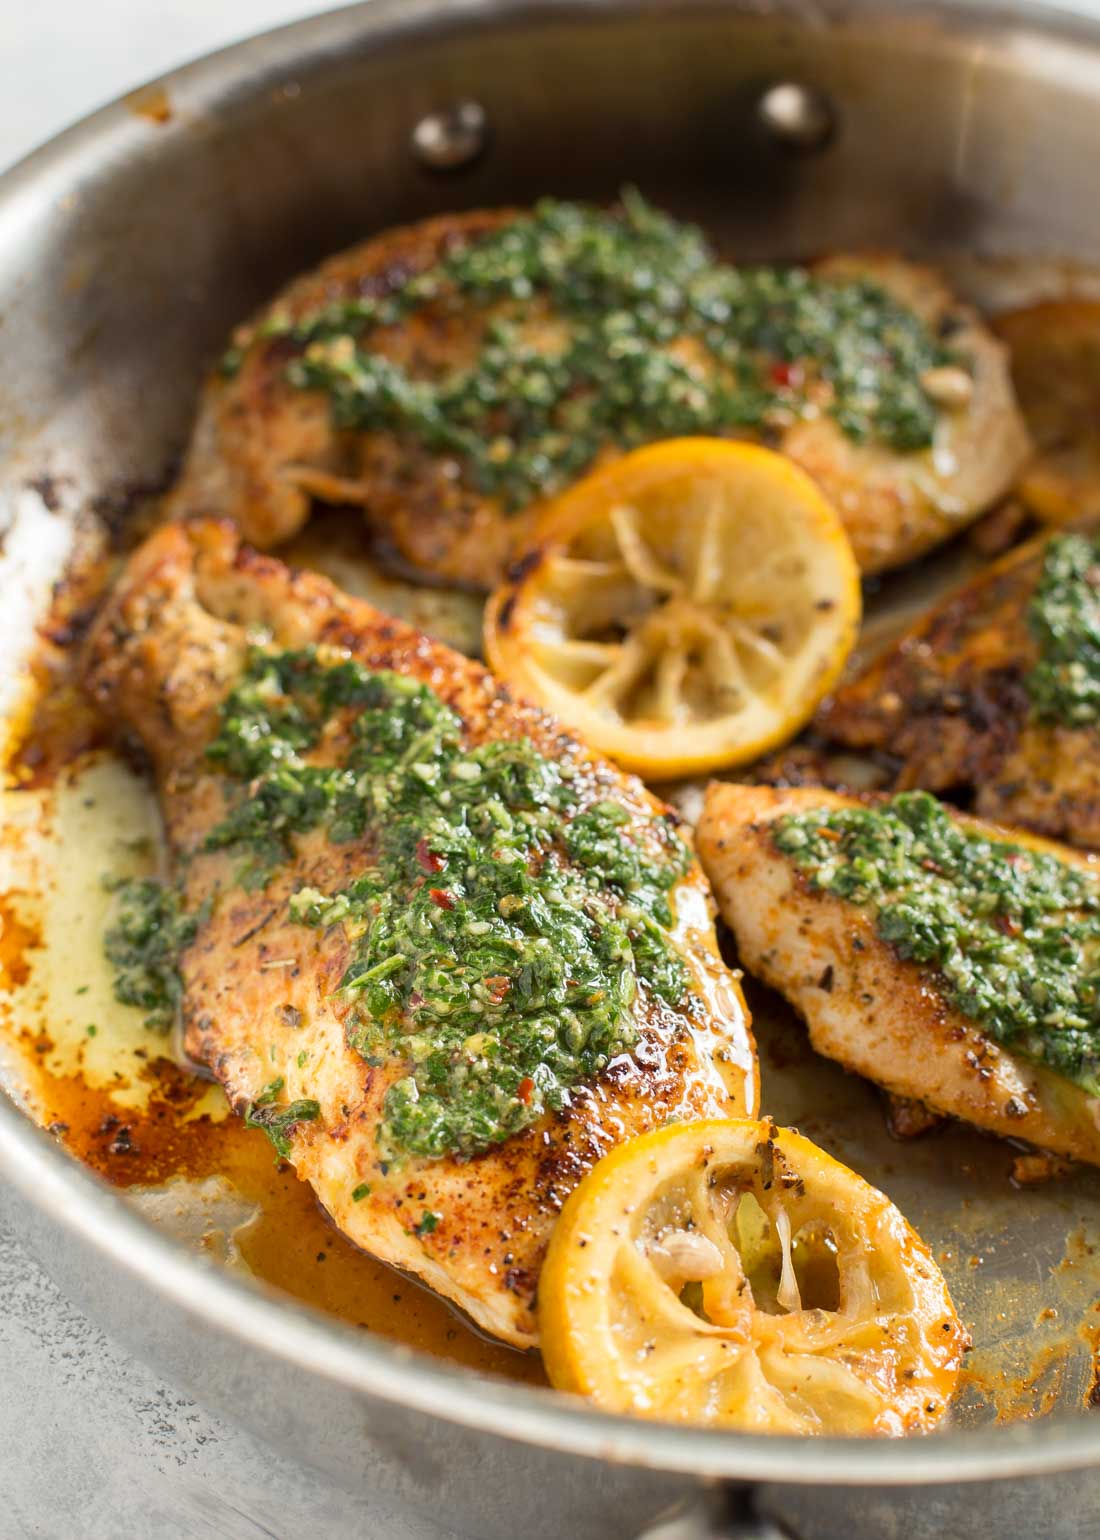 Chimichurri chicken with sauce in pan